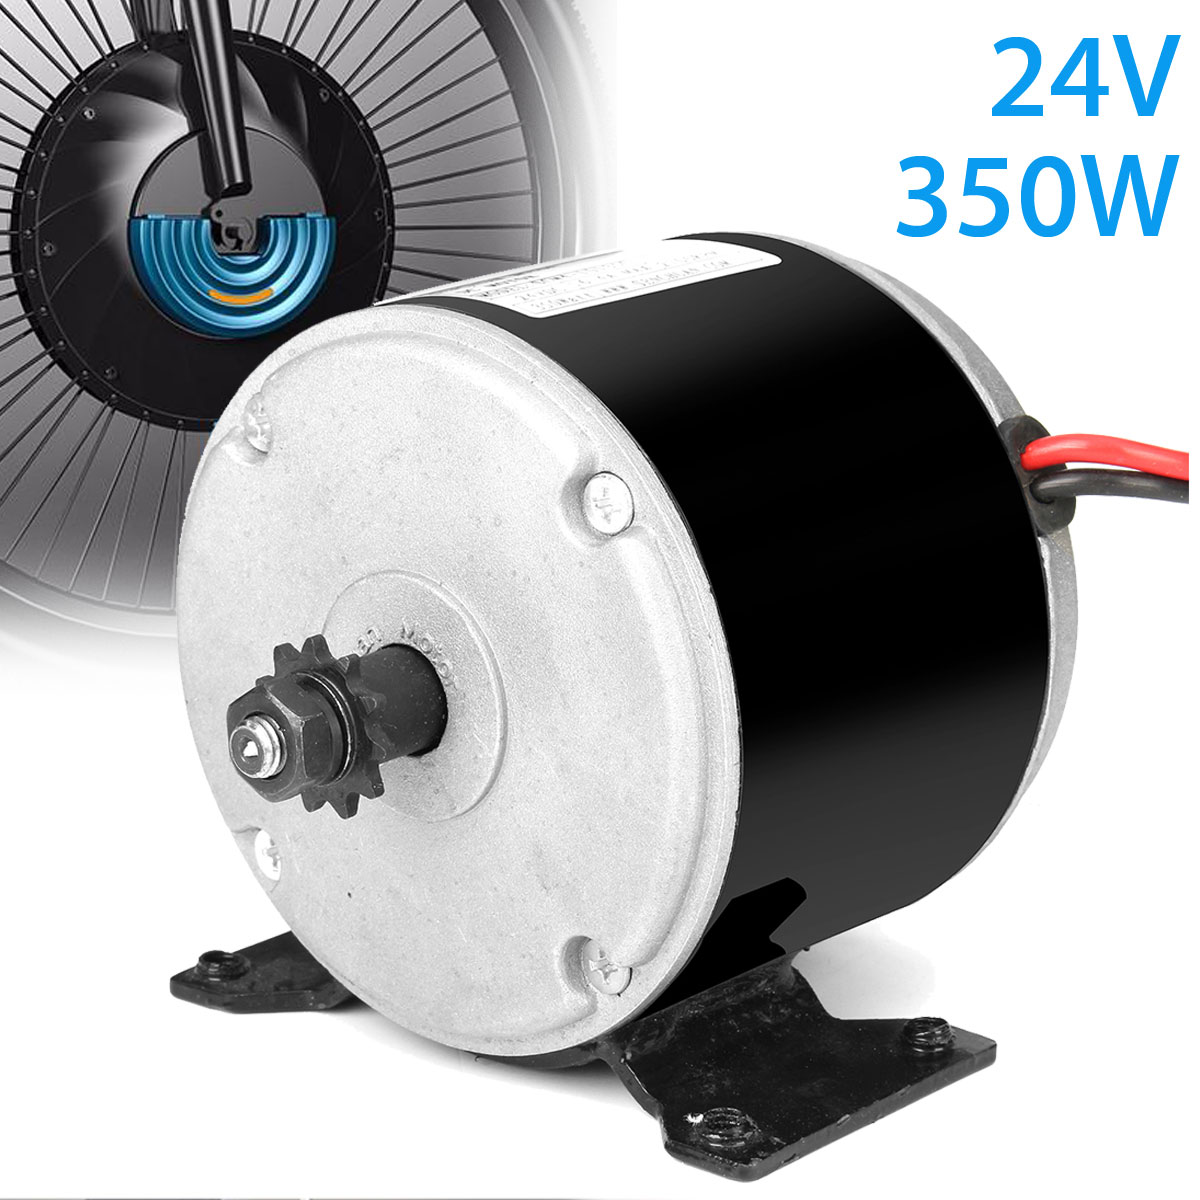 1 pcs Brand New High Quality 24V 350W DC Motor Permanent Magnet Generator Micro Motor for DIY